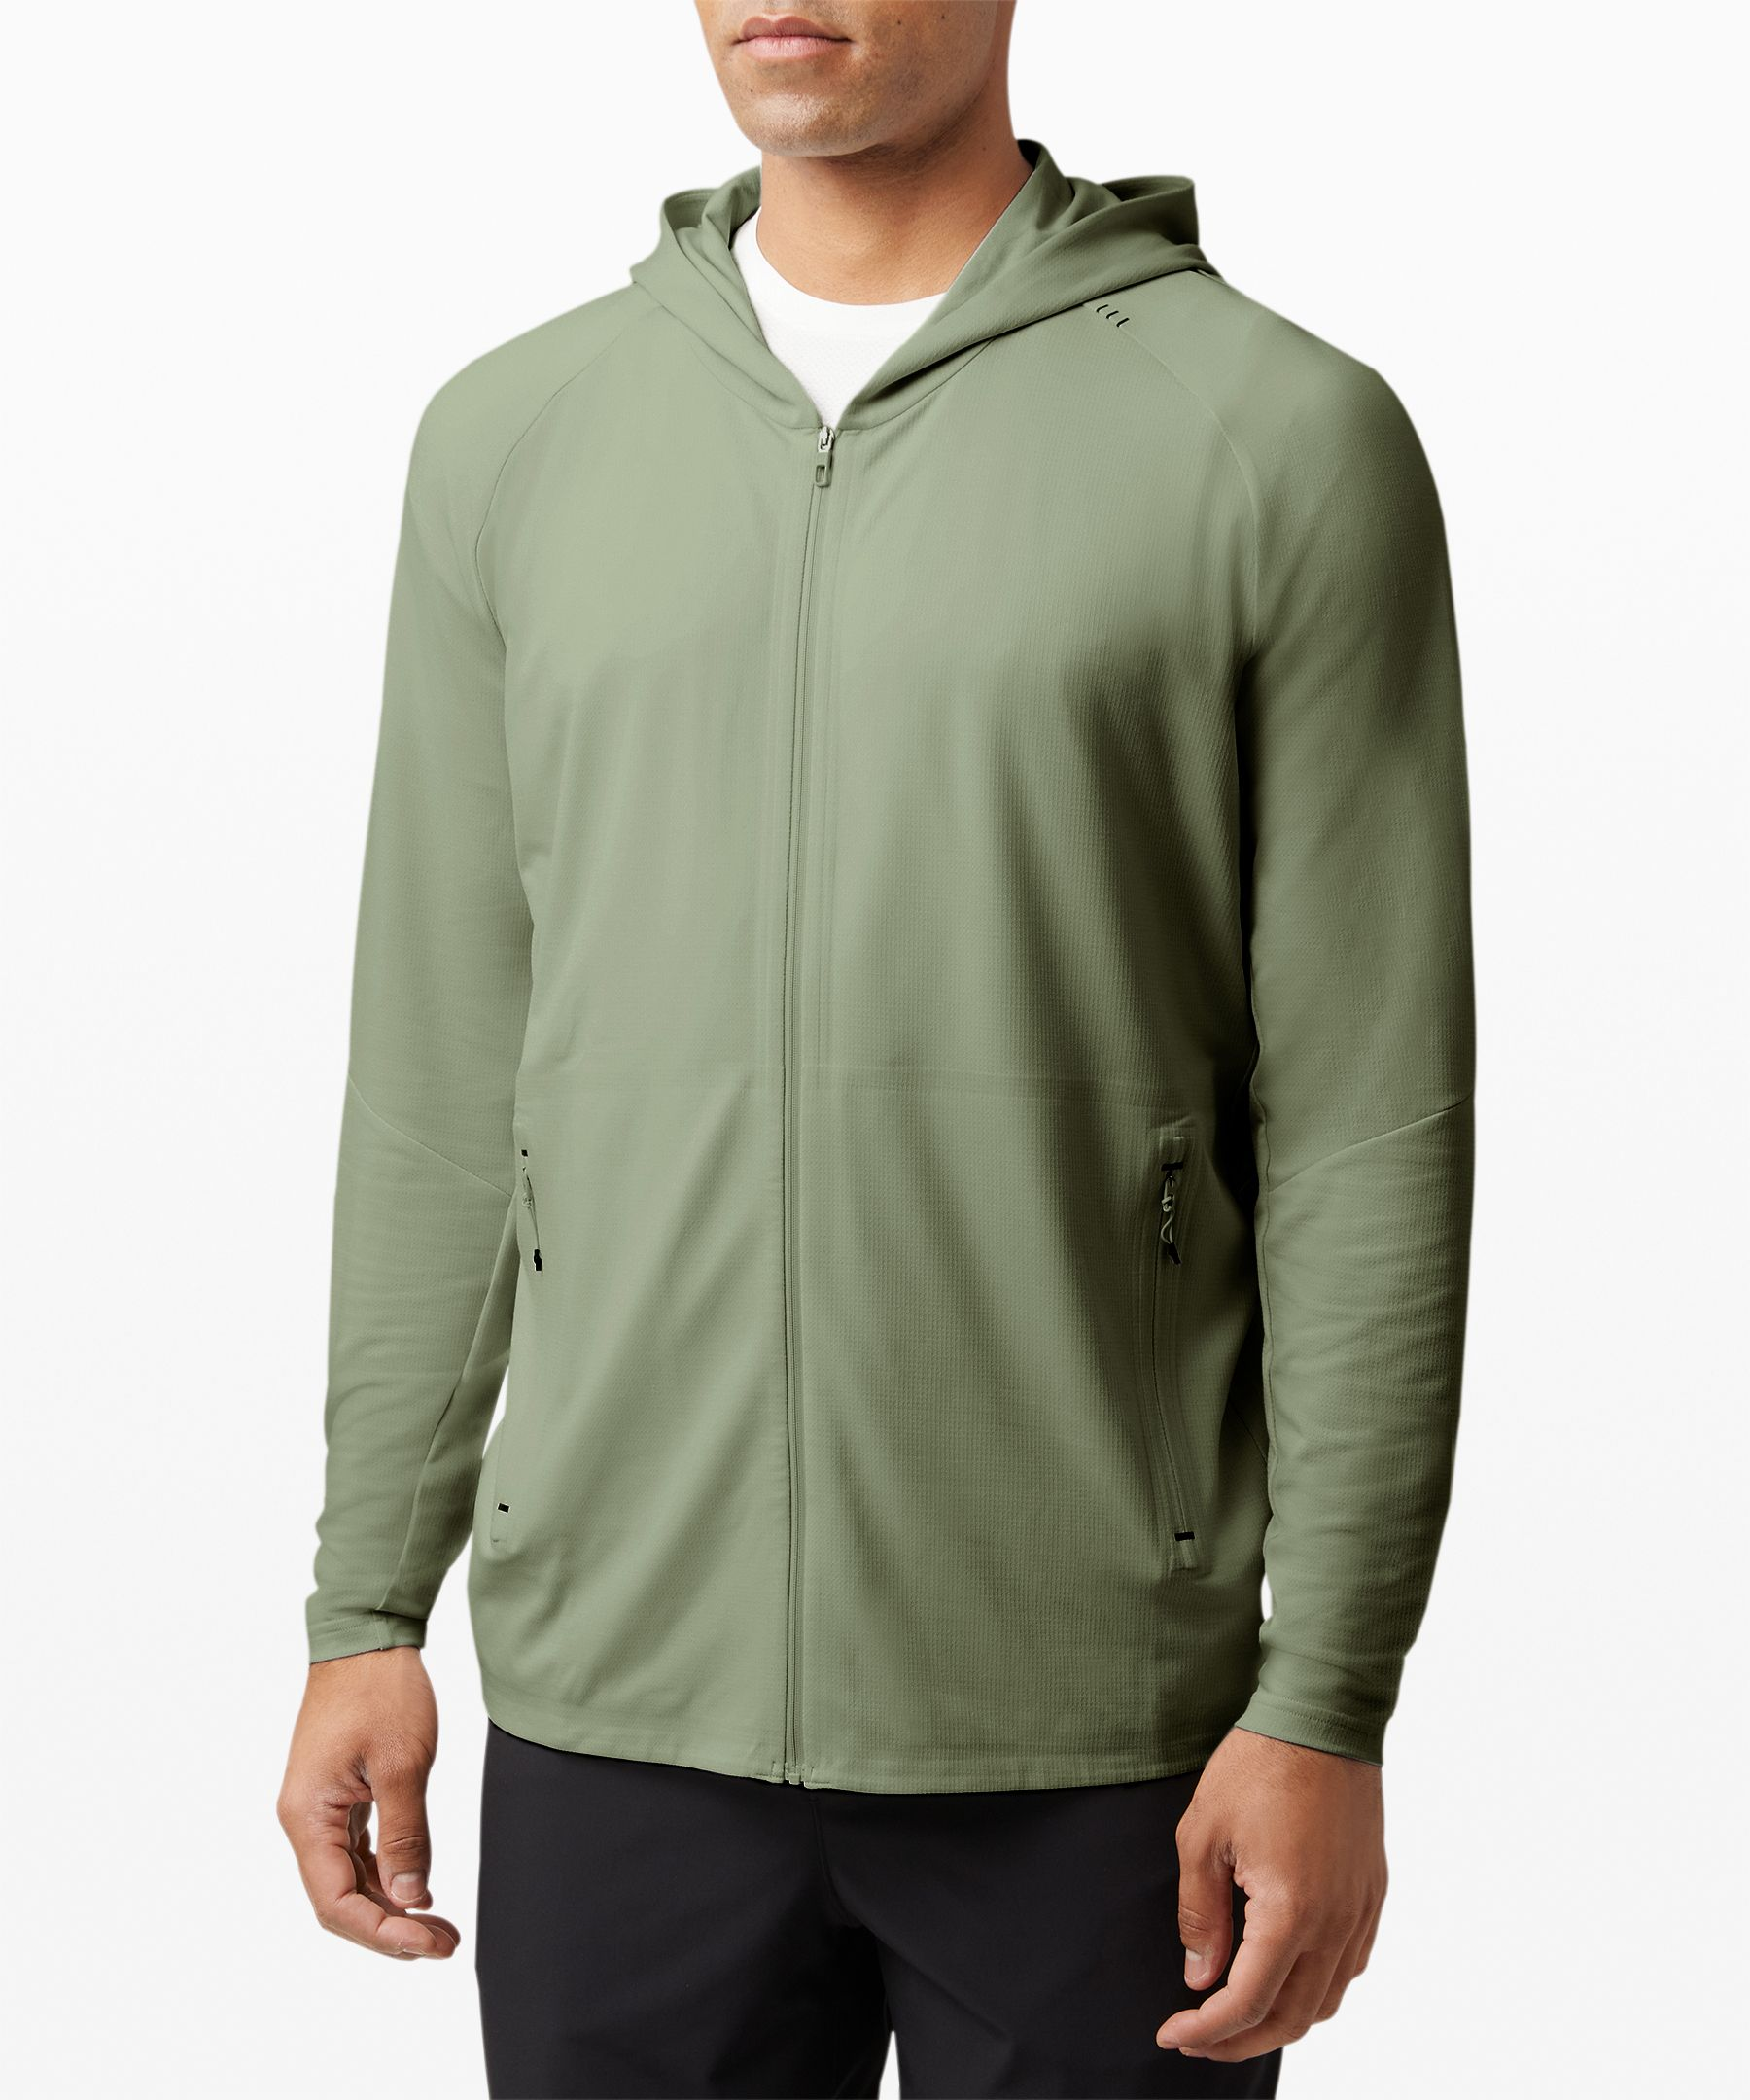 Made from high-performance fabric, this sweat-wicking hoodie keeps things lightweight and breezy even in the heat.